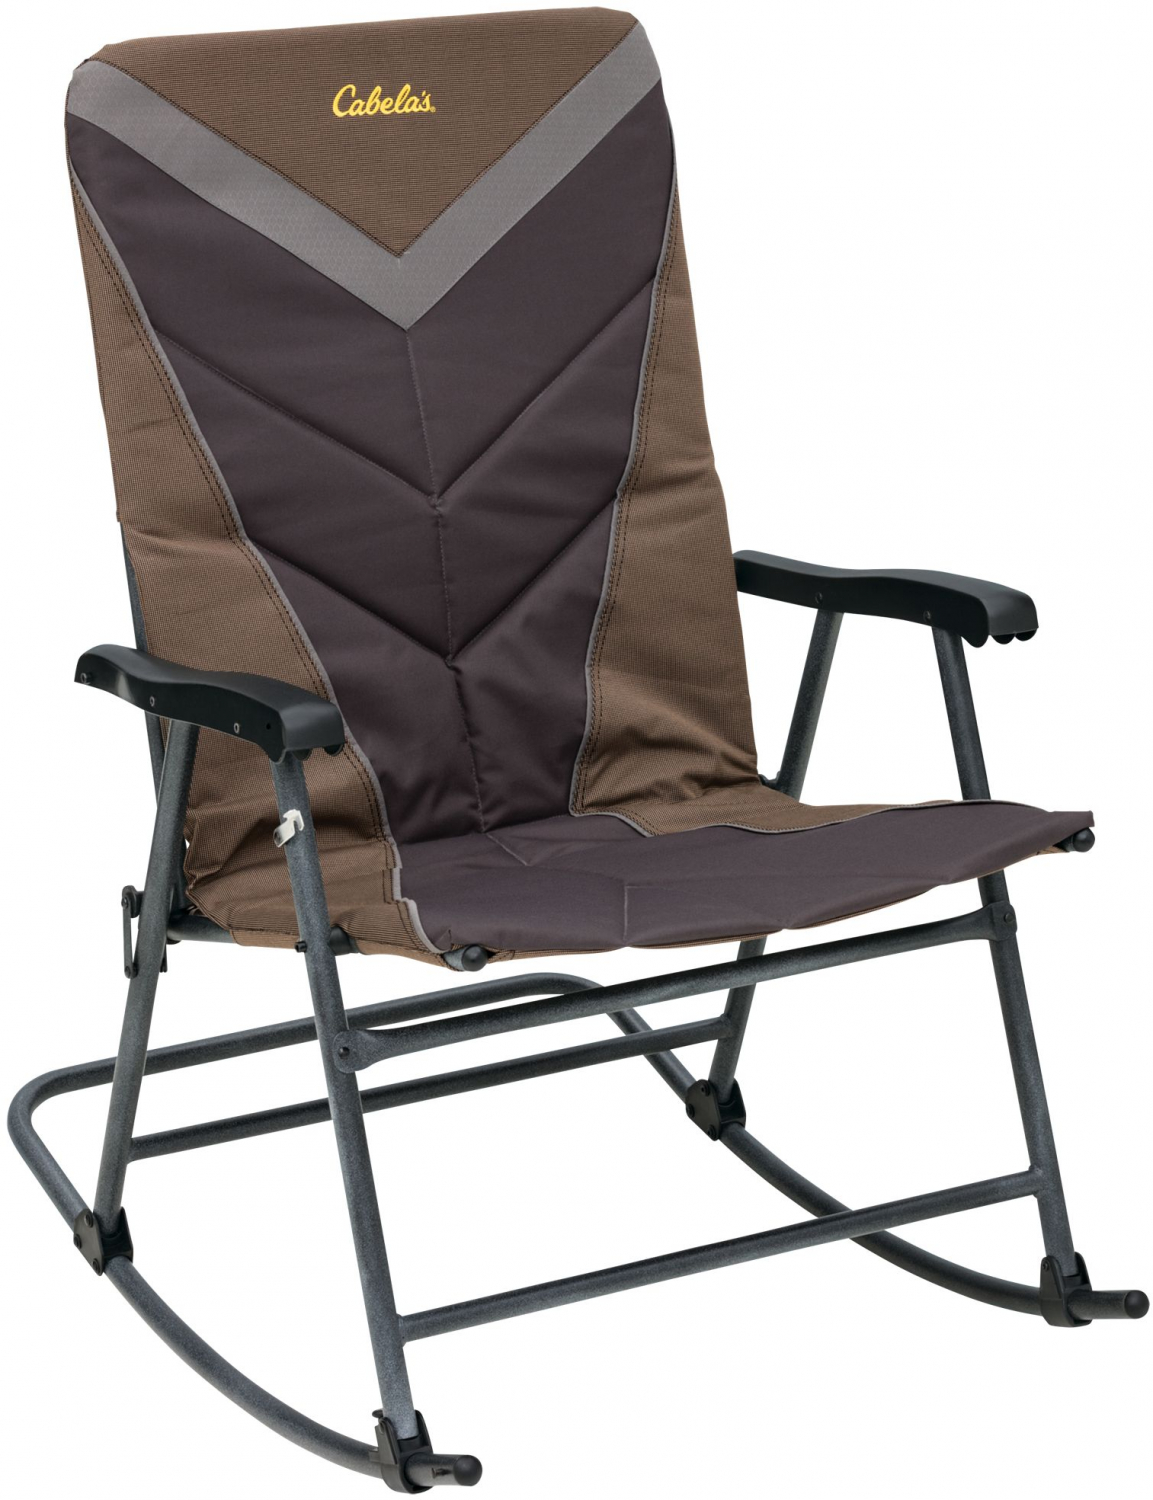 Awesome Details About Cabelas Big Outdoorsman Rocker Fold Up Chair Gmtry Best Dining Table And Chair Ideas Images Gmtryco